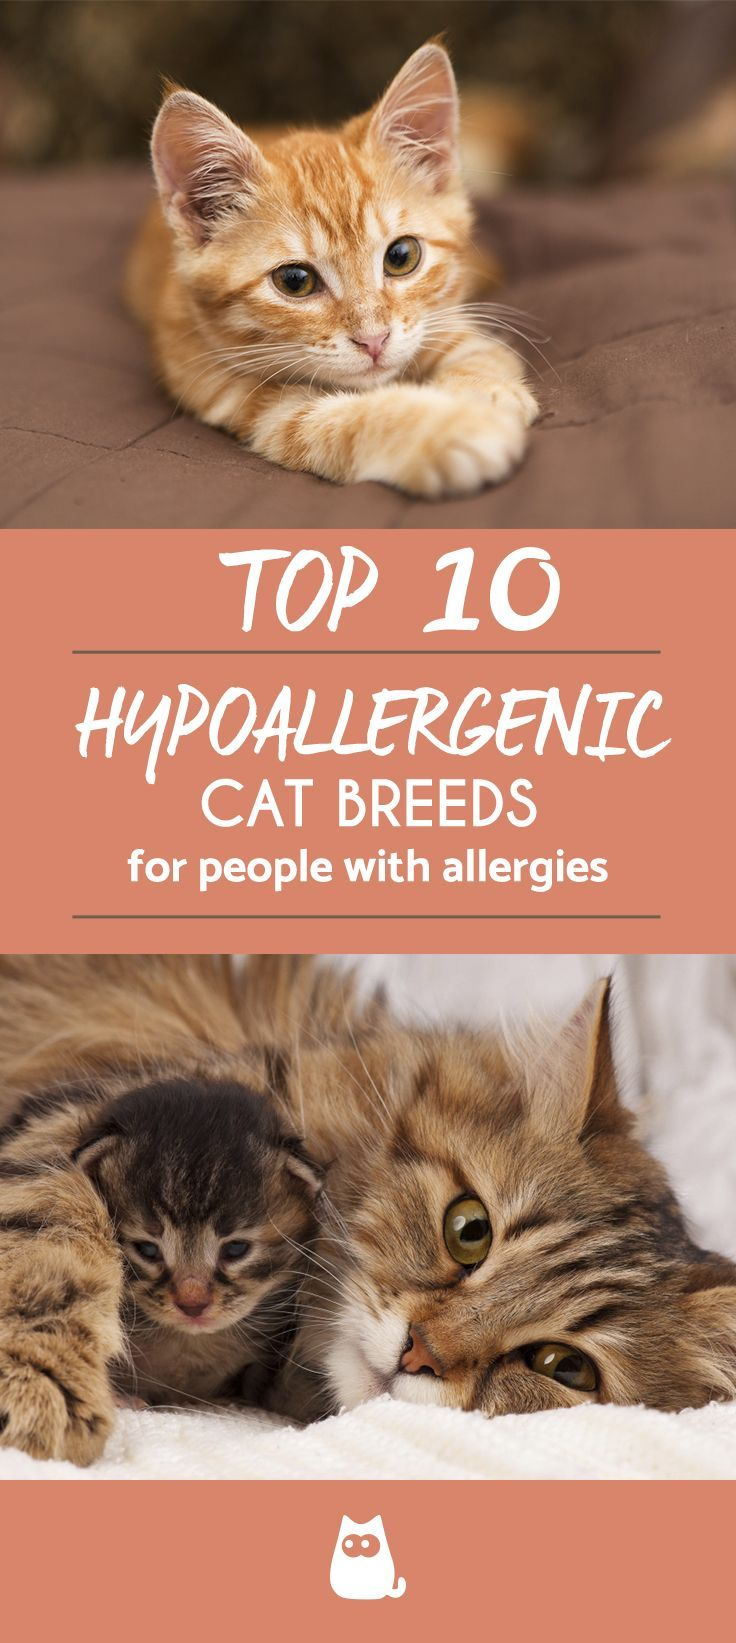 Best Cat Breeds For Allergic Families Cats Katzen Rassen Katzenrassen Alle Katzenrassen